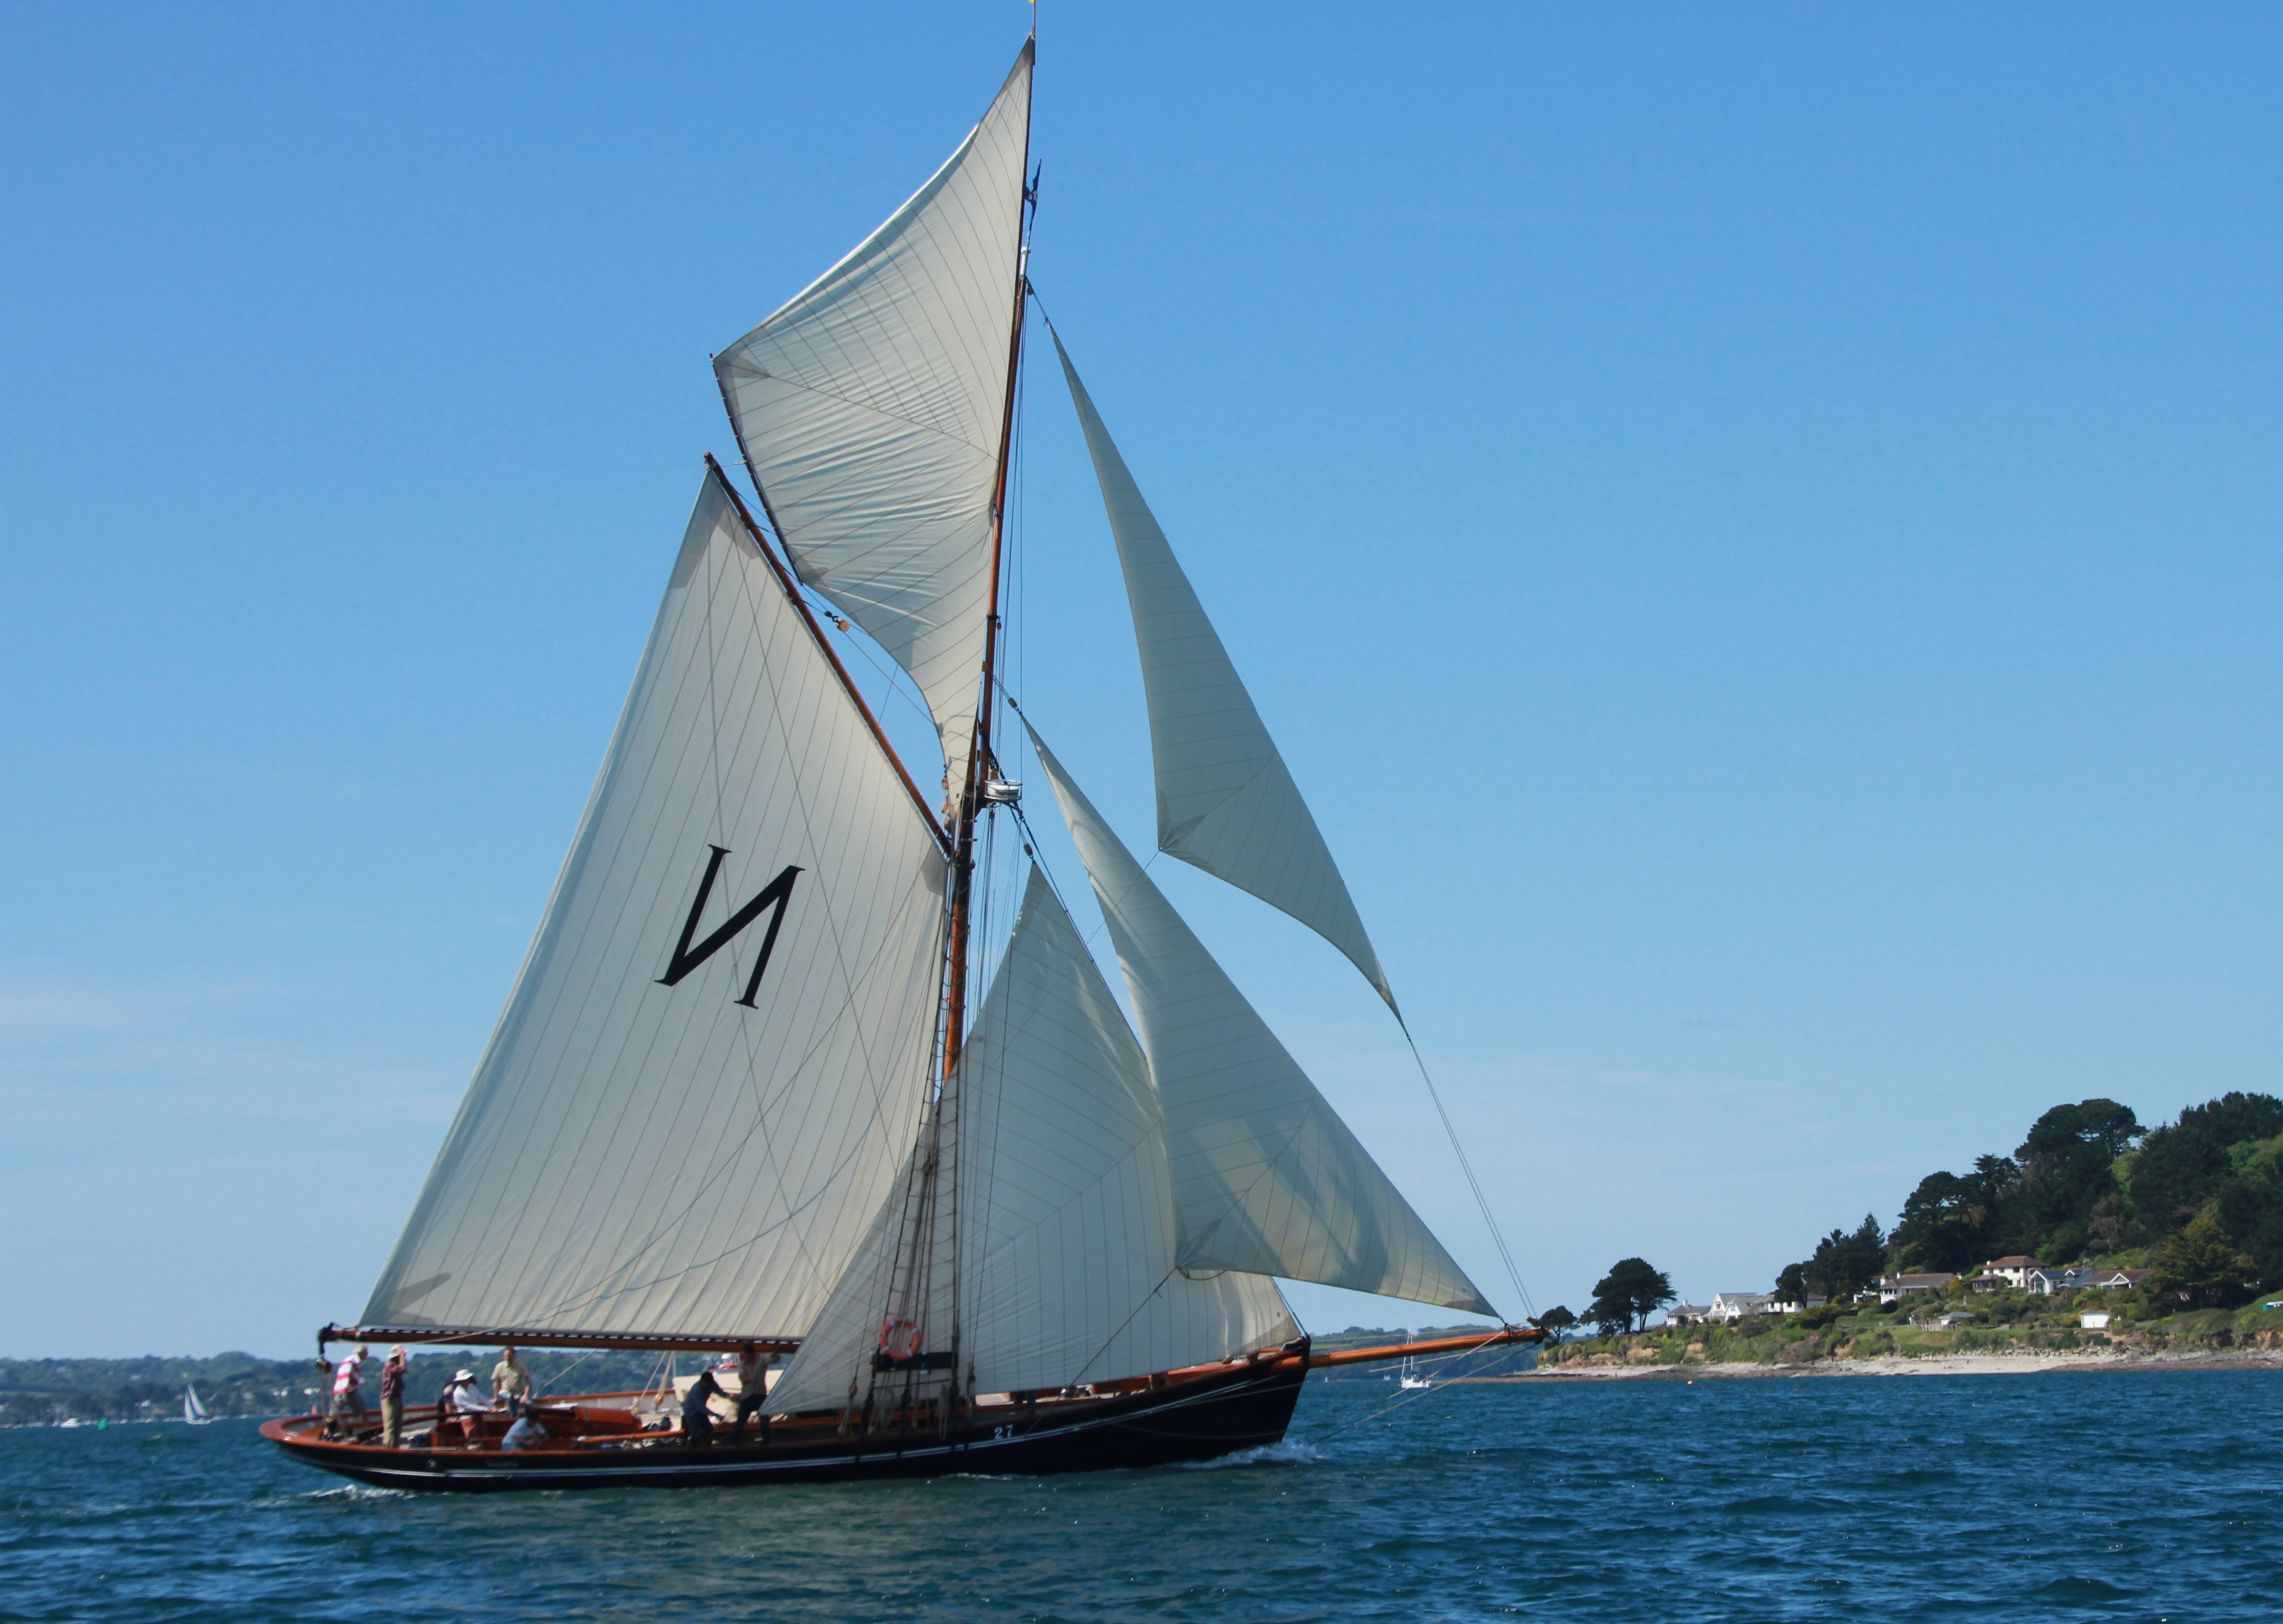 short sailing breaks from £250 on the largest Bristol Channel Pilot Cutter Mascotte in Cornwall